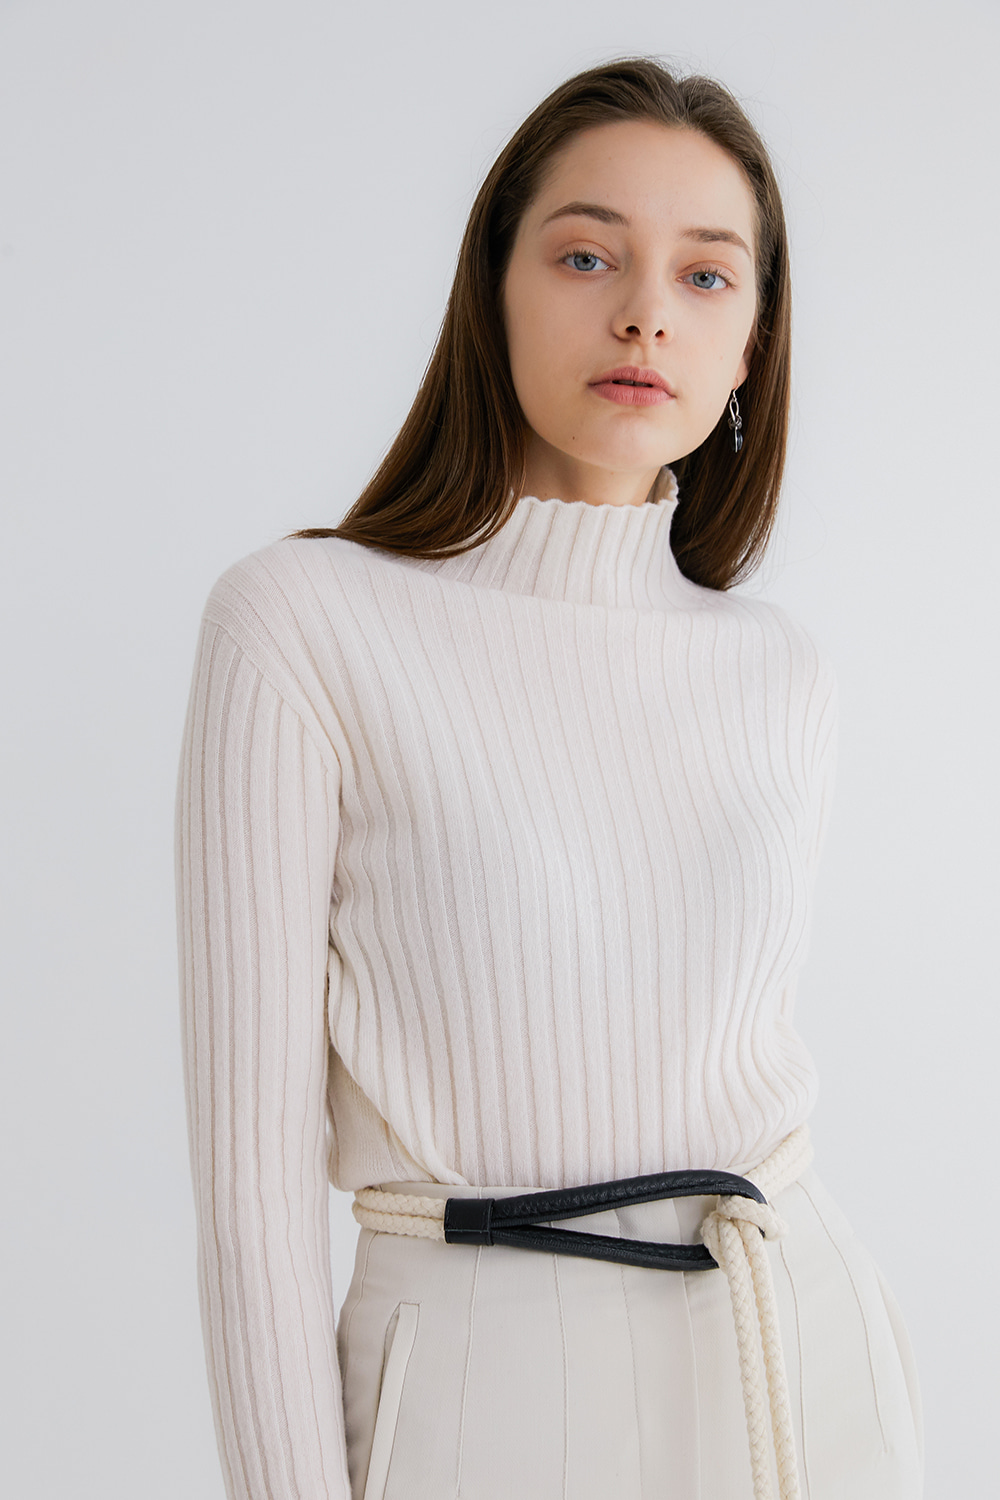 프리미엄 캐시미어 100 골지 스웨터 [Pure cashmere100 ribbed soft-touch sweater by whole-garment knitting - Pearl Ivory][재입고]